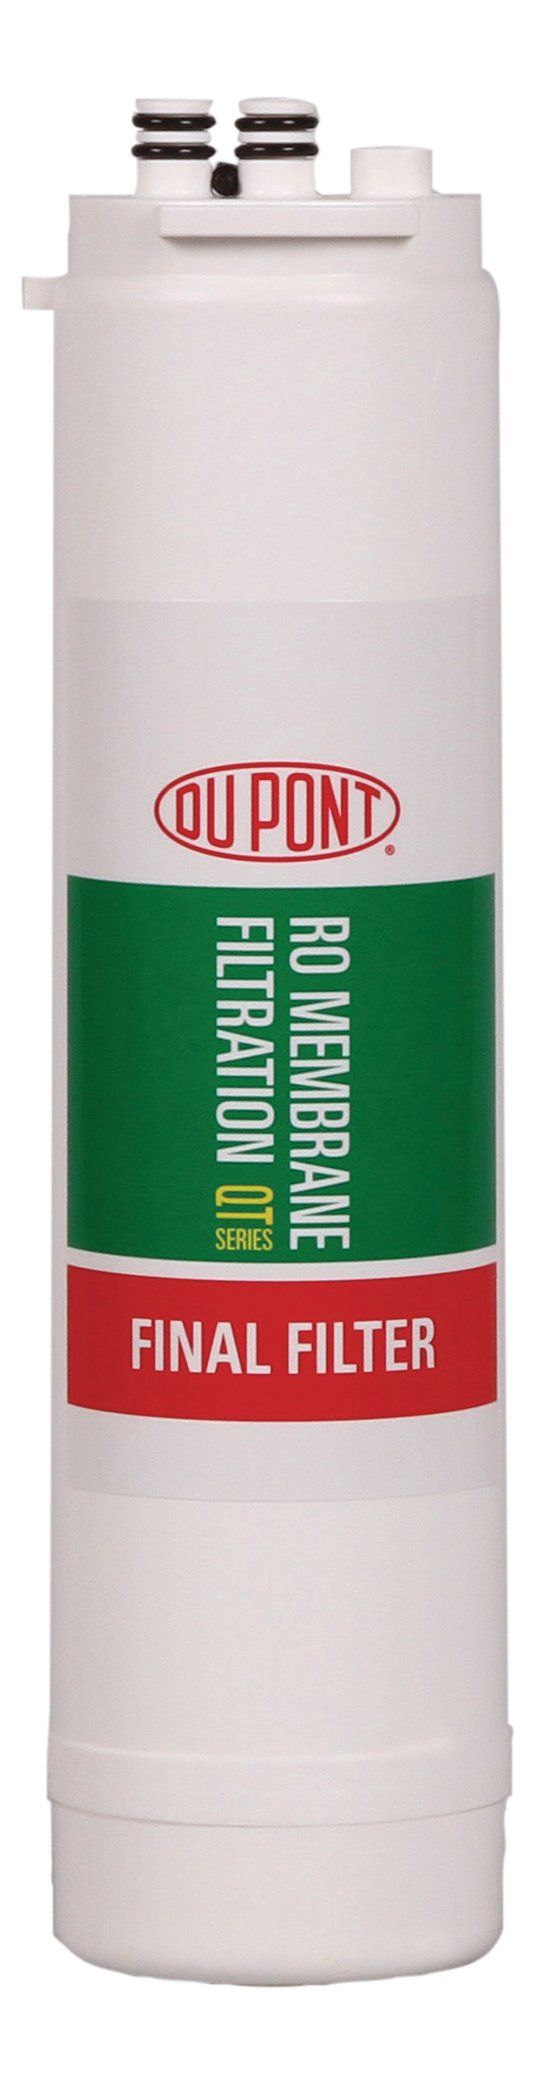 DuPont DUPONT-WFROM1000X Quicktwist Reverse Osmosis Membrane